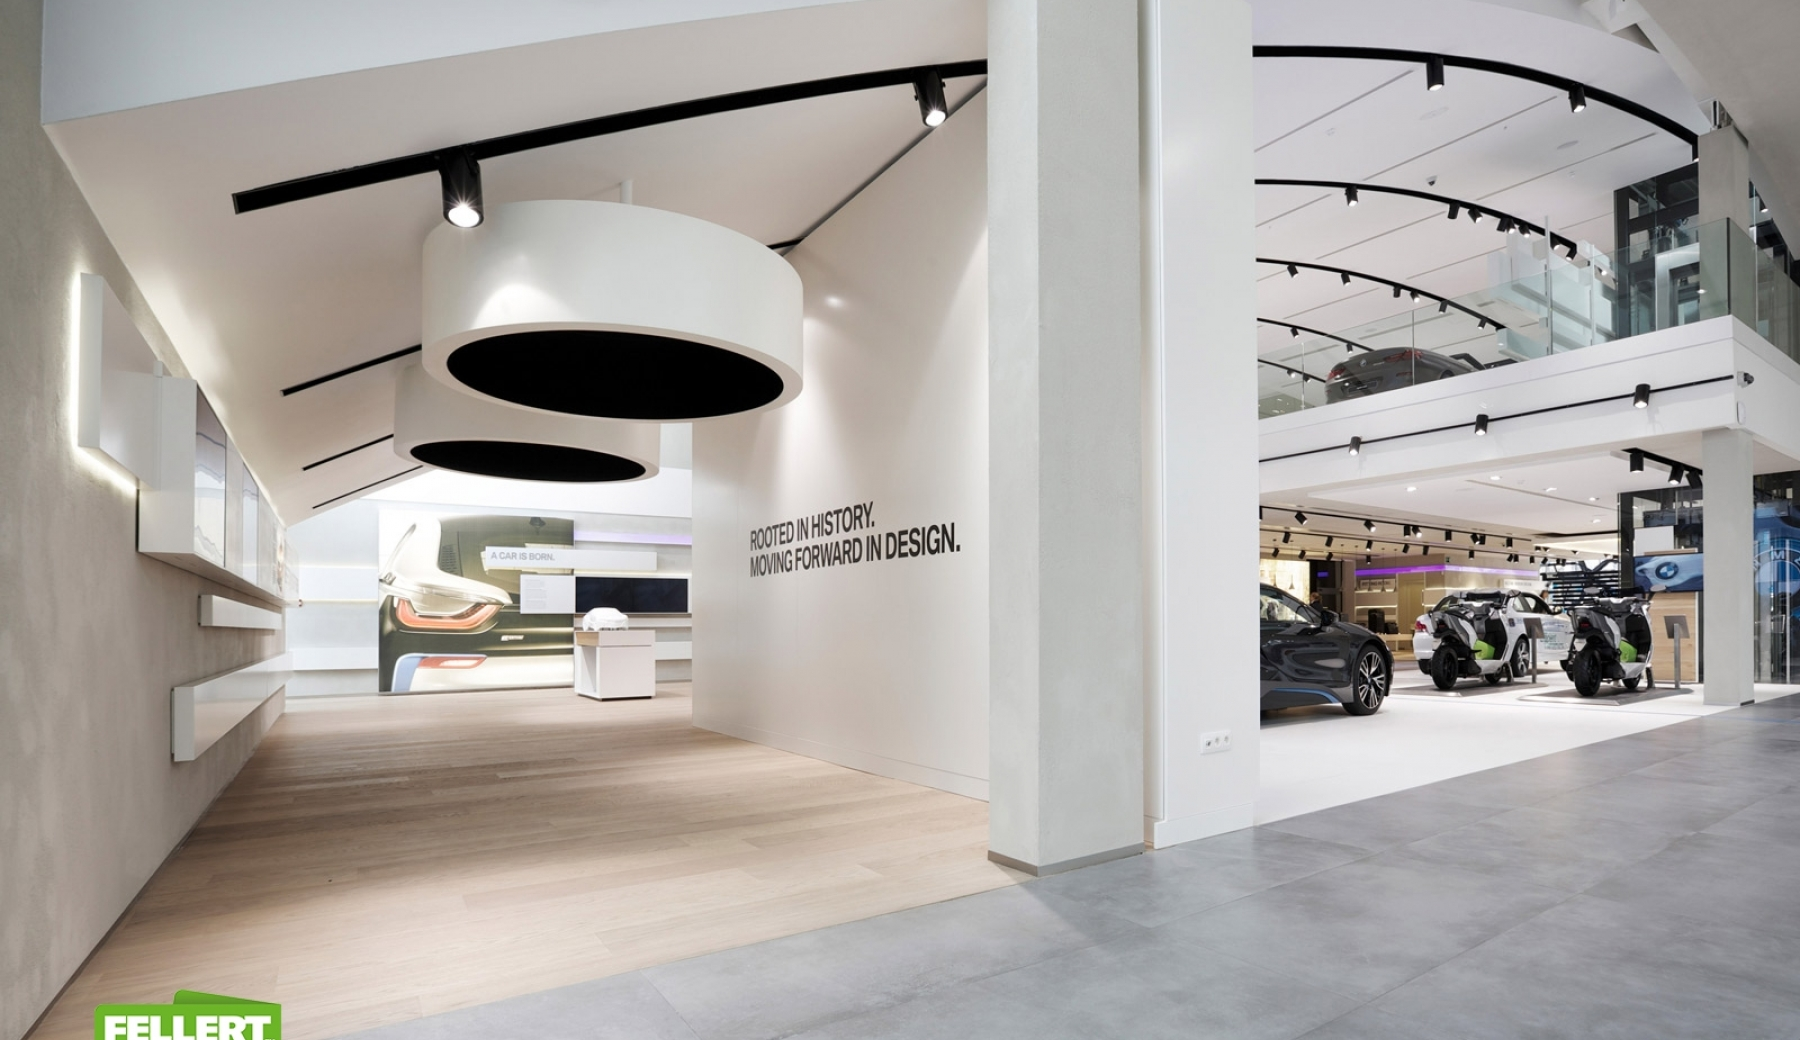 Fellert_BMW_showroom_Alexandre_van_Battel_web_1600x1066